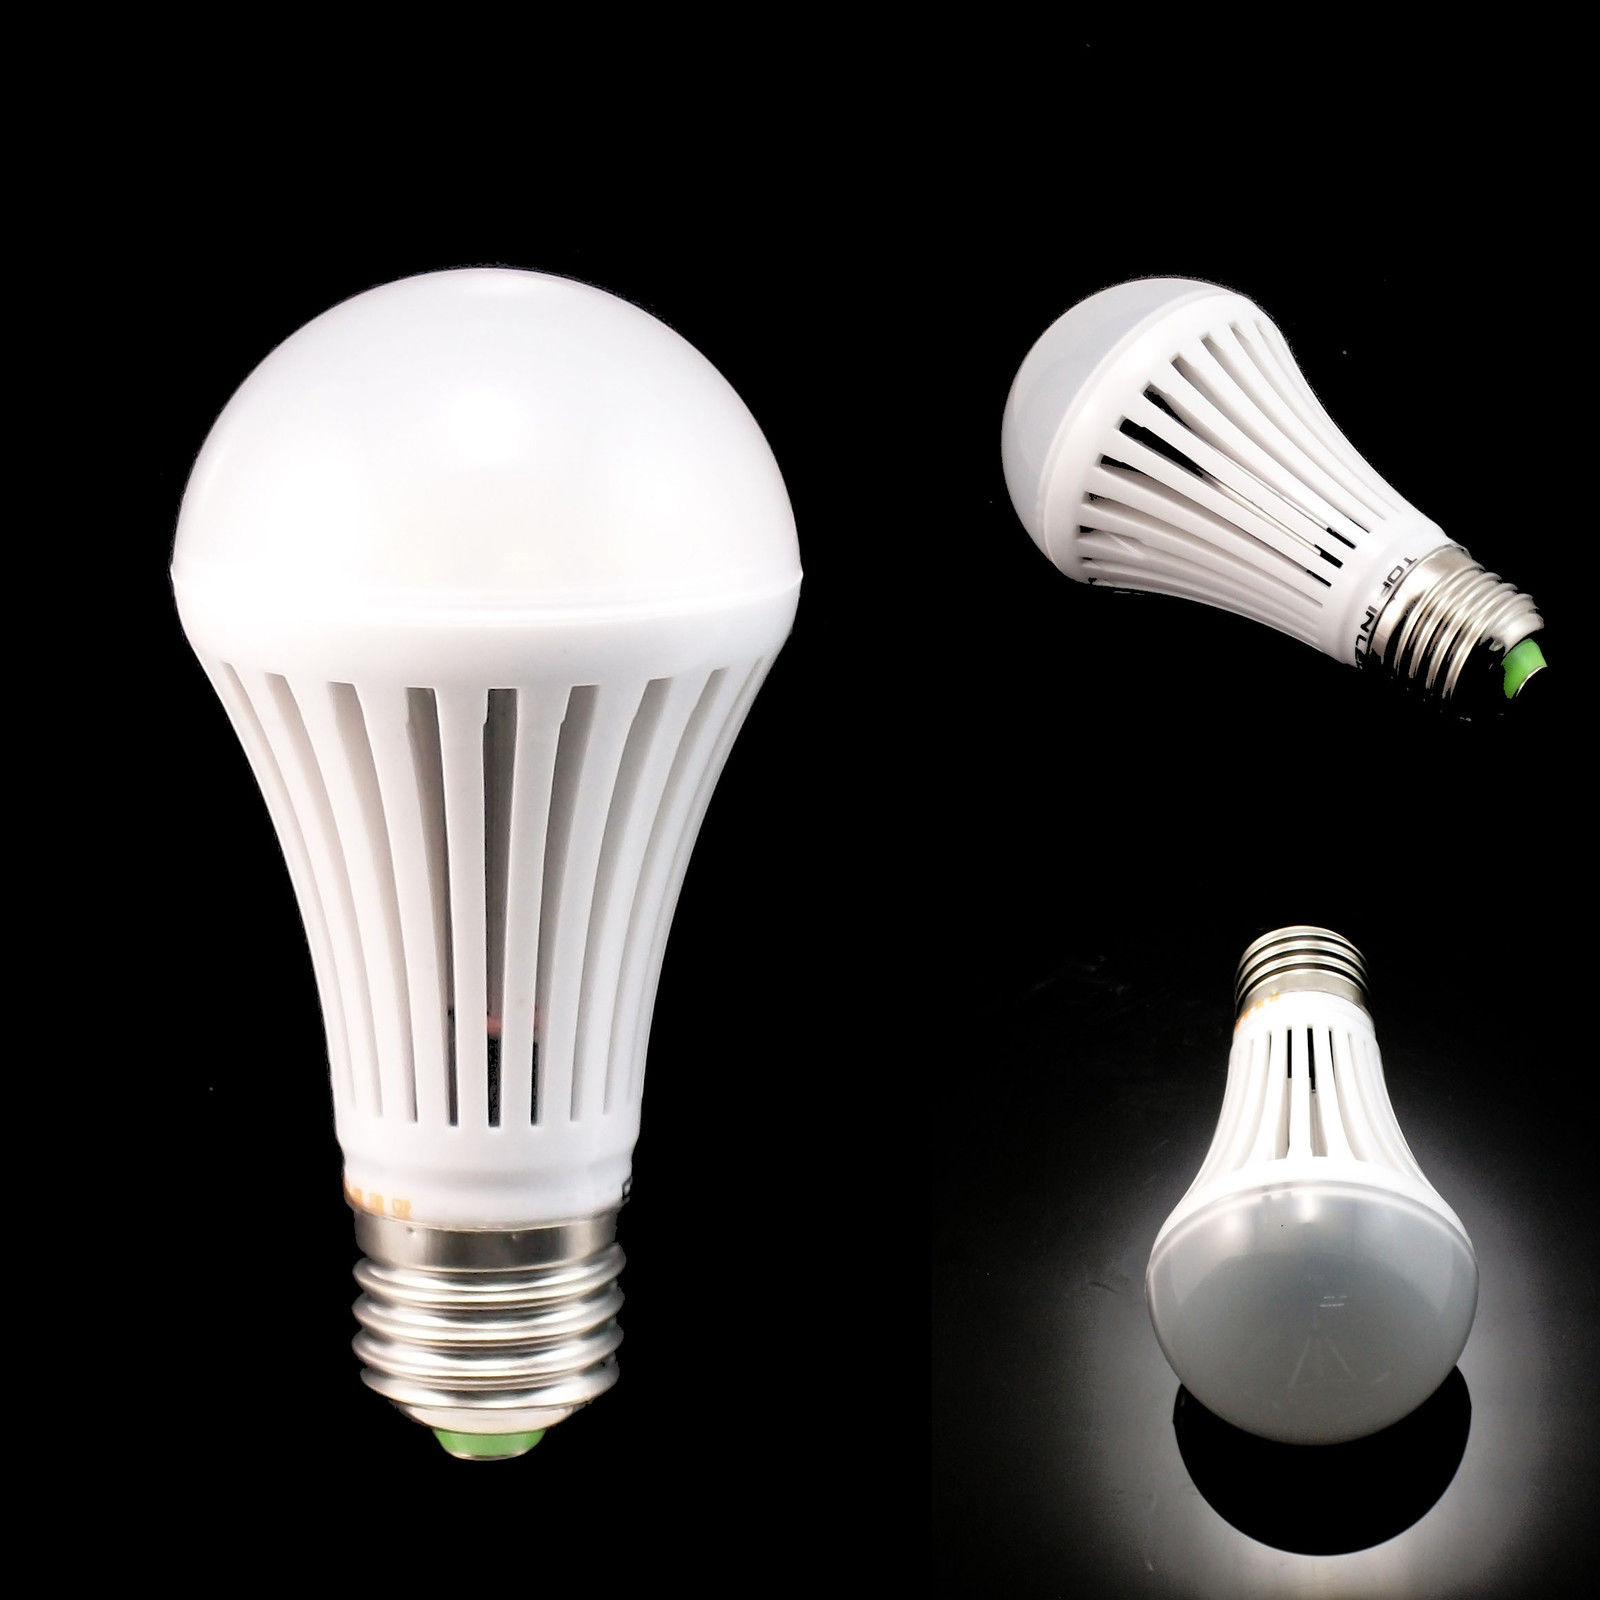 Energy Saving Bright Light Led Bulb Lamp For Home Use 7w E26 110v Ten Bulbs Light Bulbs